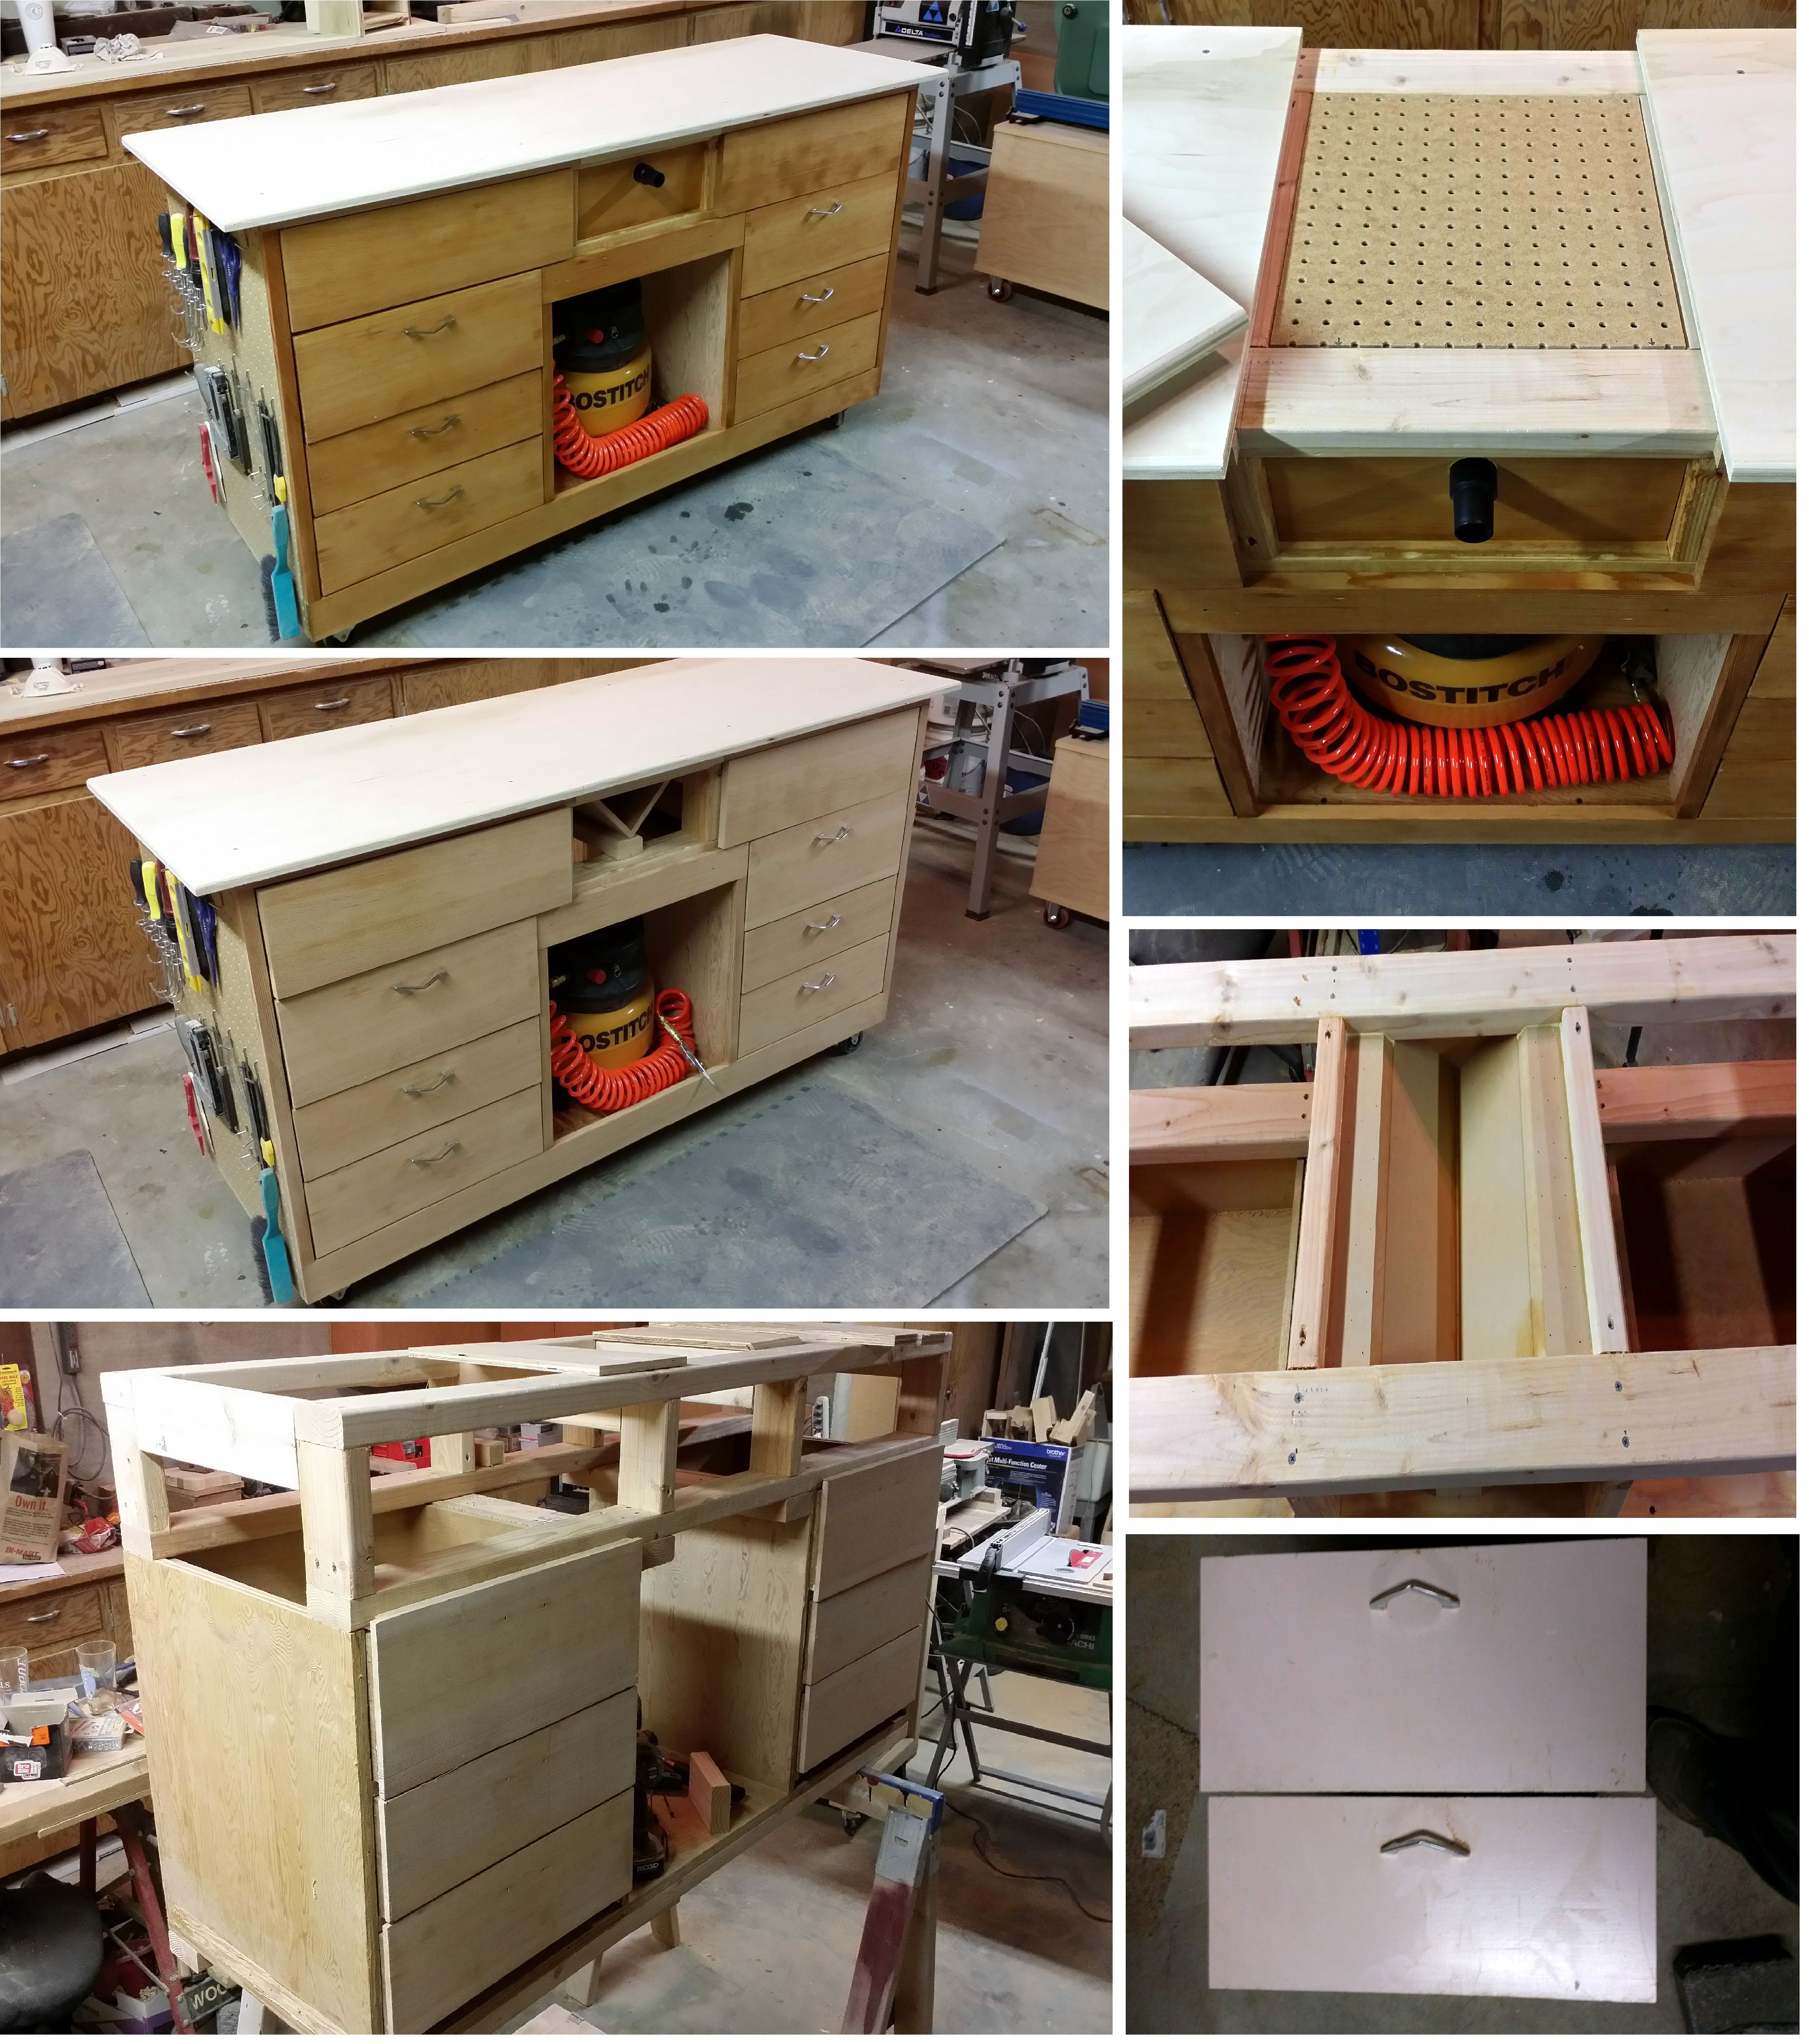 Mobile work station with downdraft area